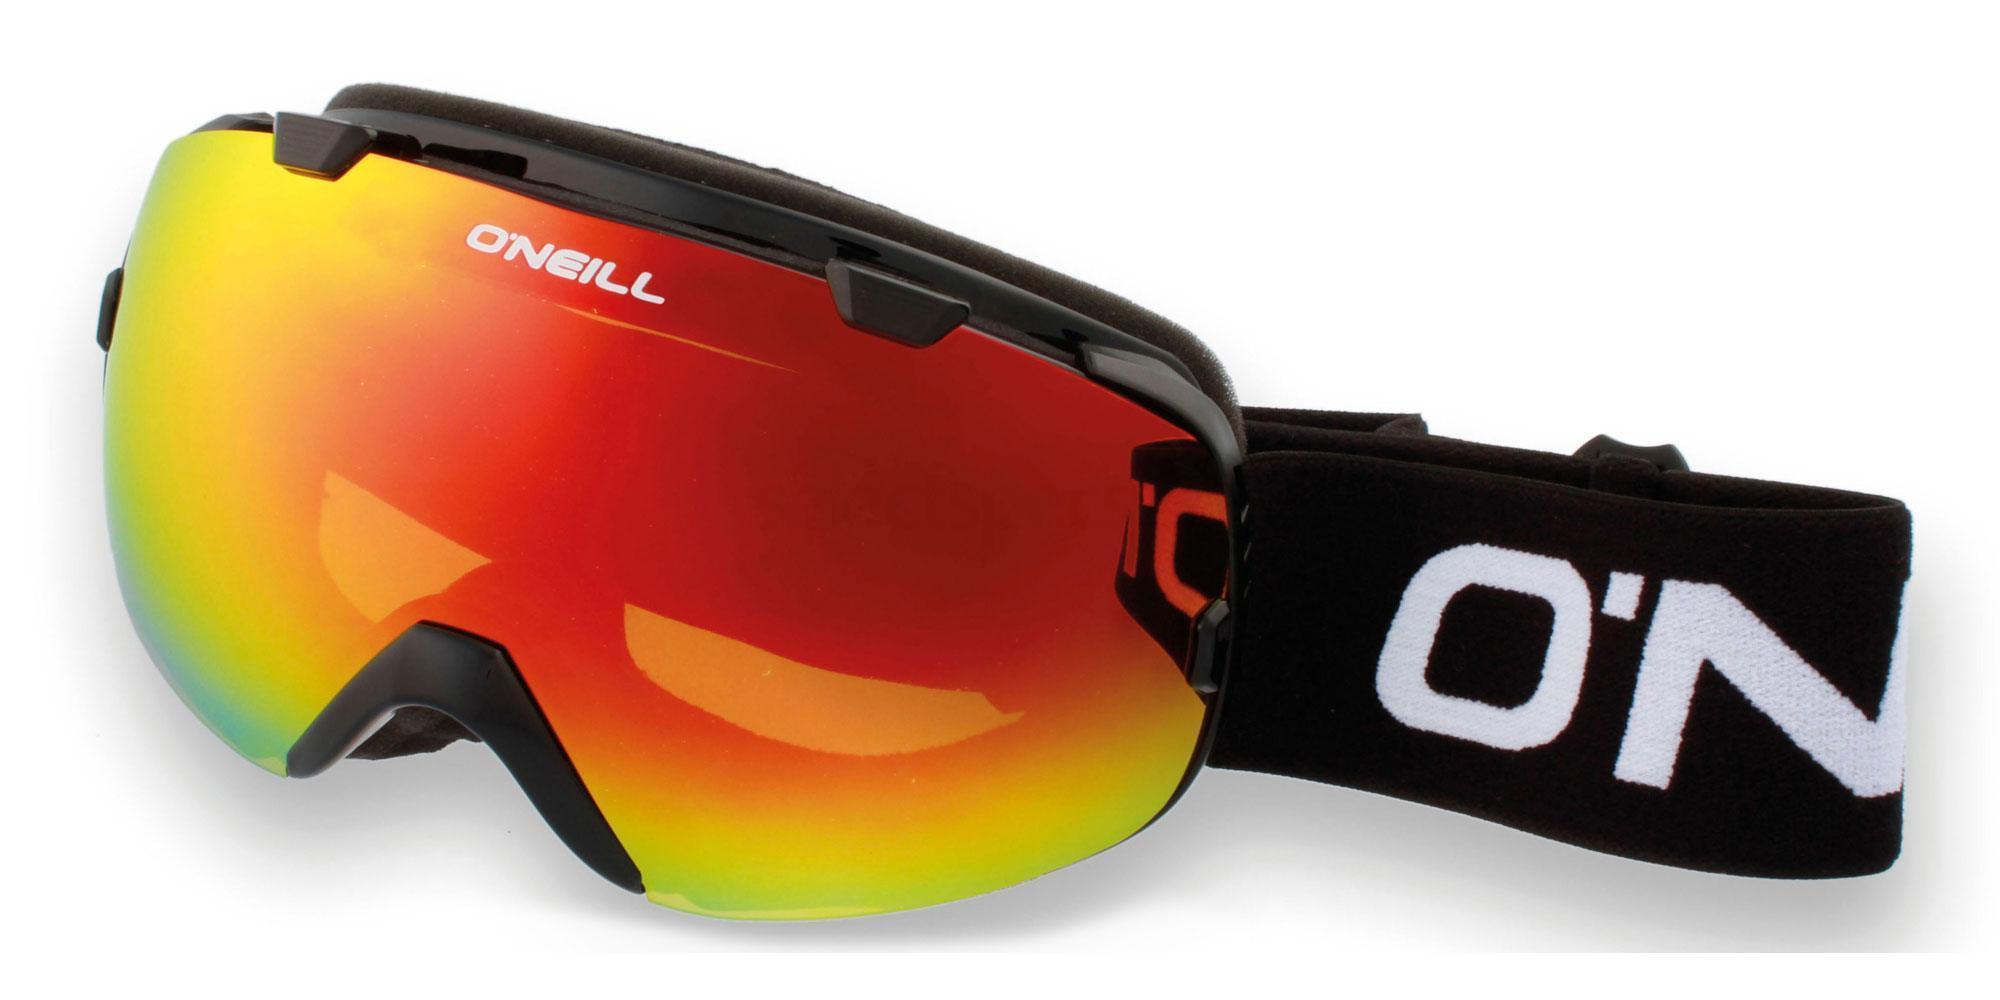 040604 REACH (Spherical Lens) Goggles, O'Neill